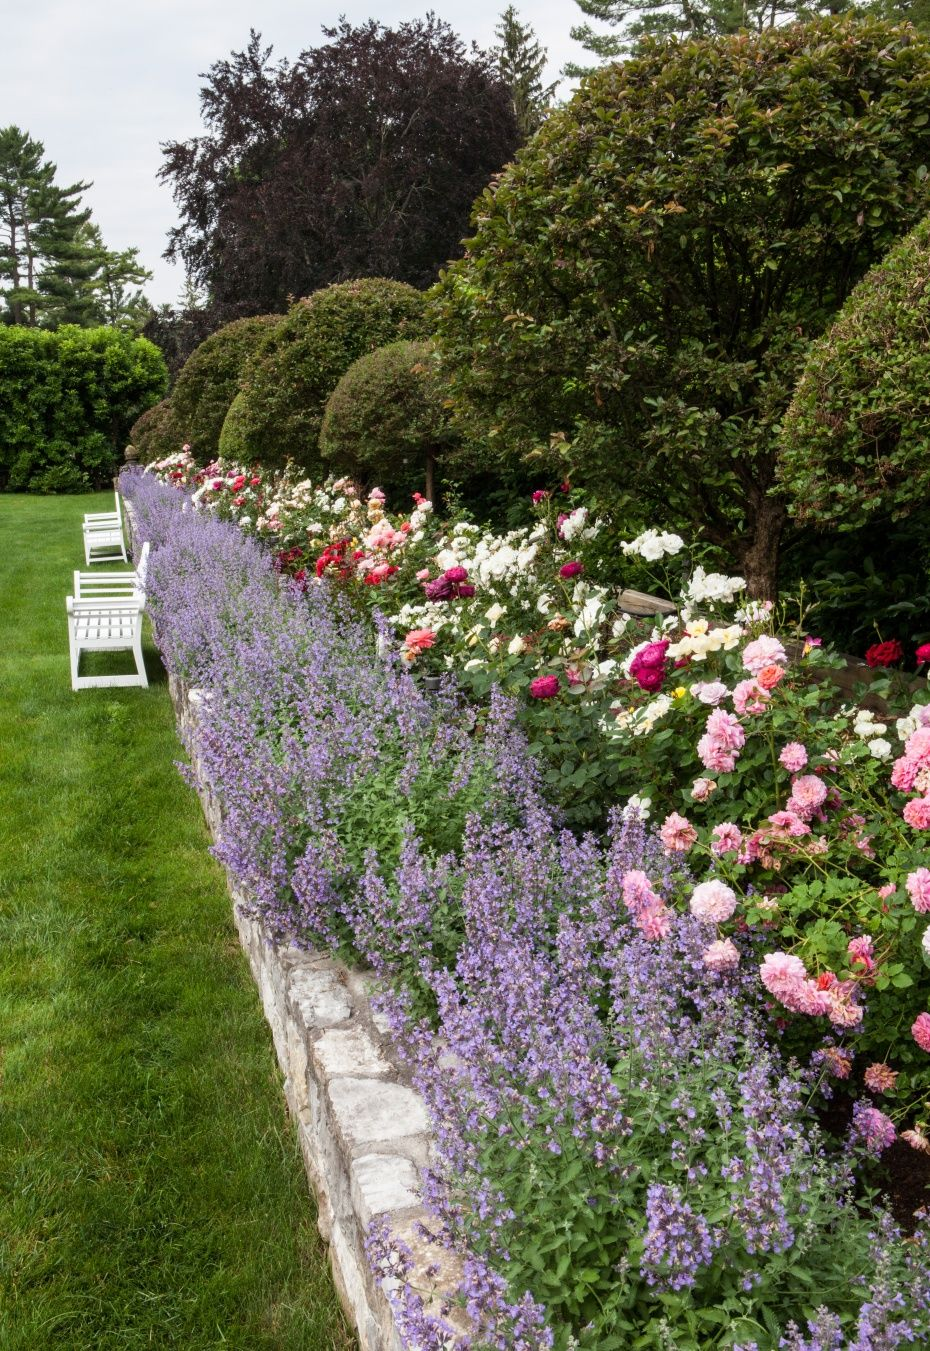 Country backyard landscaping ideas - Lavender And Rose Garden For The Back Patio Wonder If The Lavender Will Help Keep